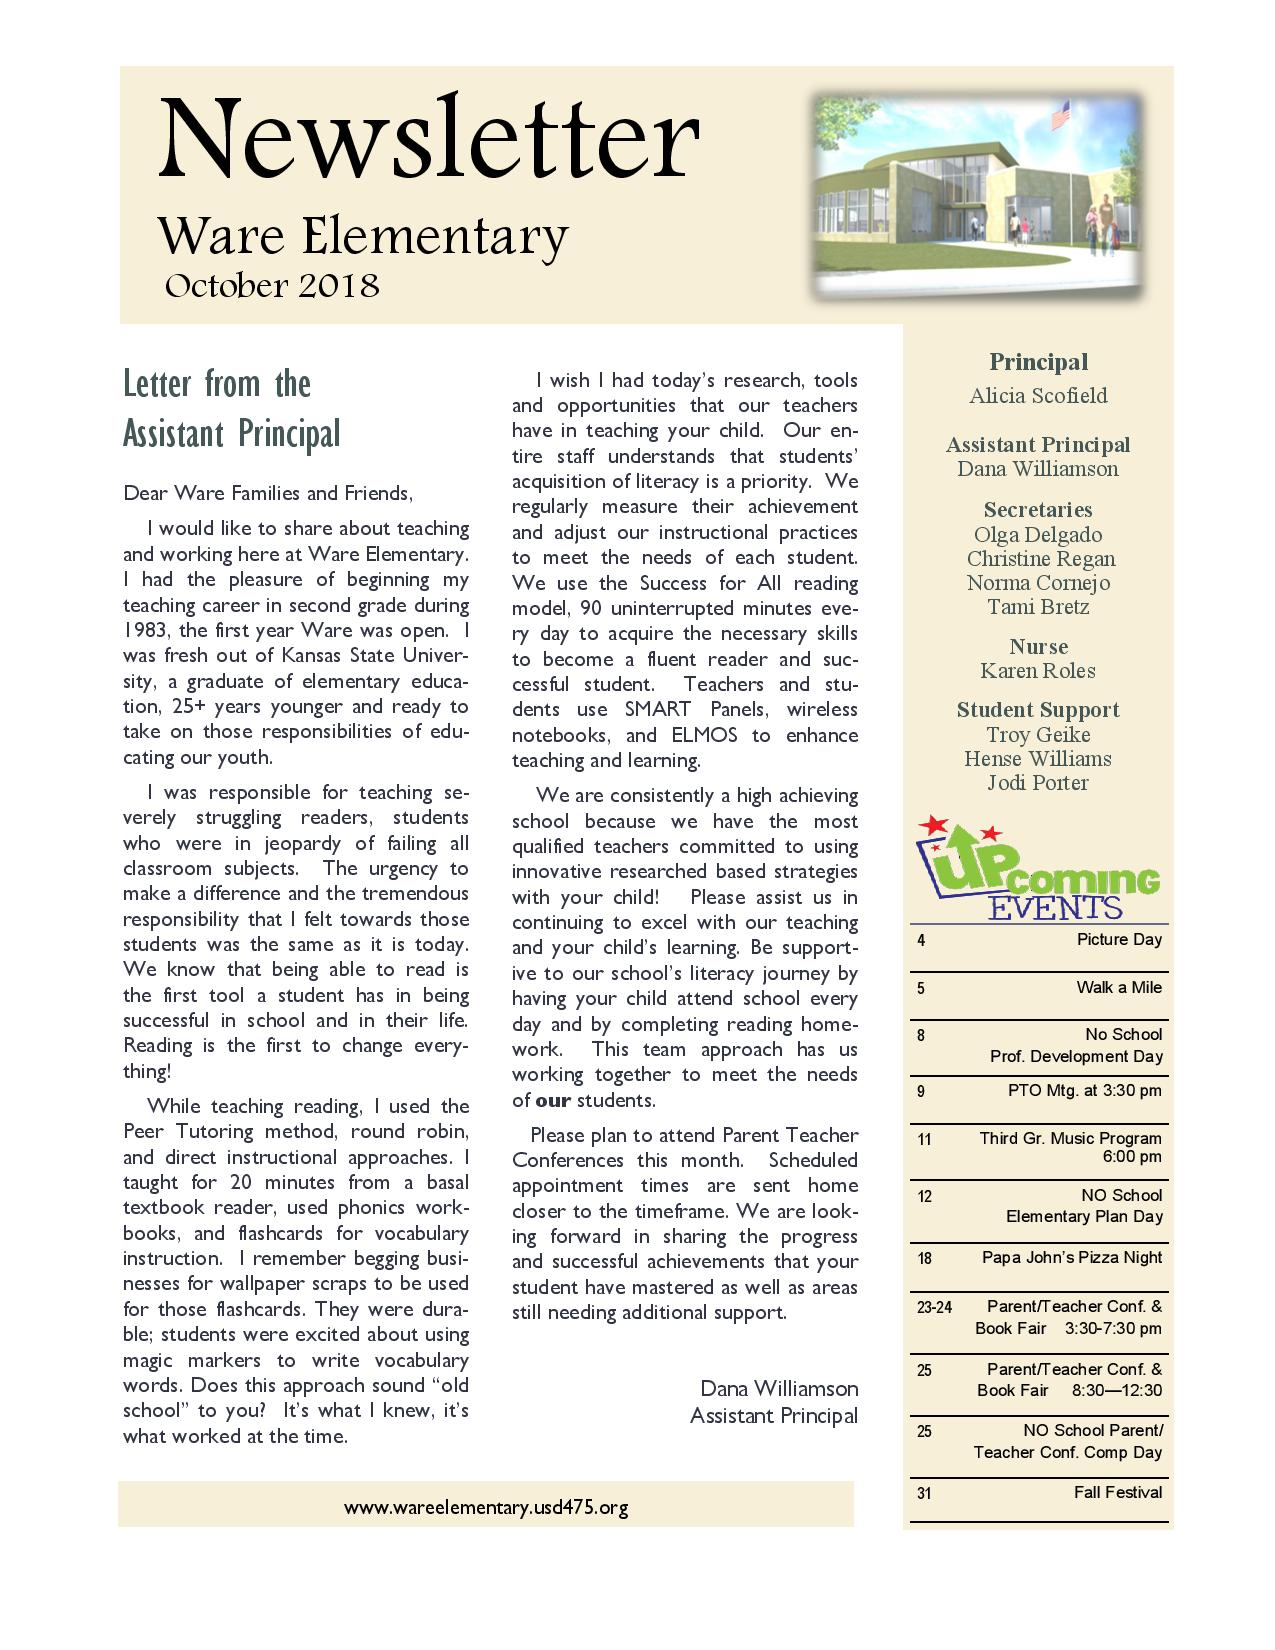 Newsletter October 2018-page-001